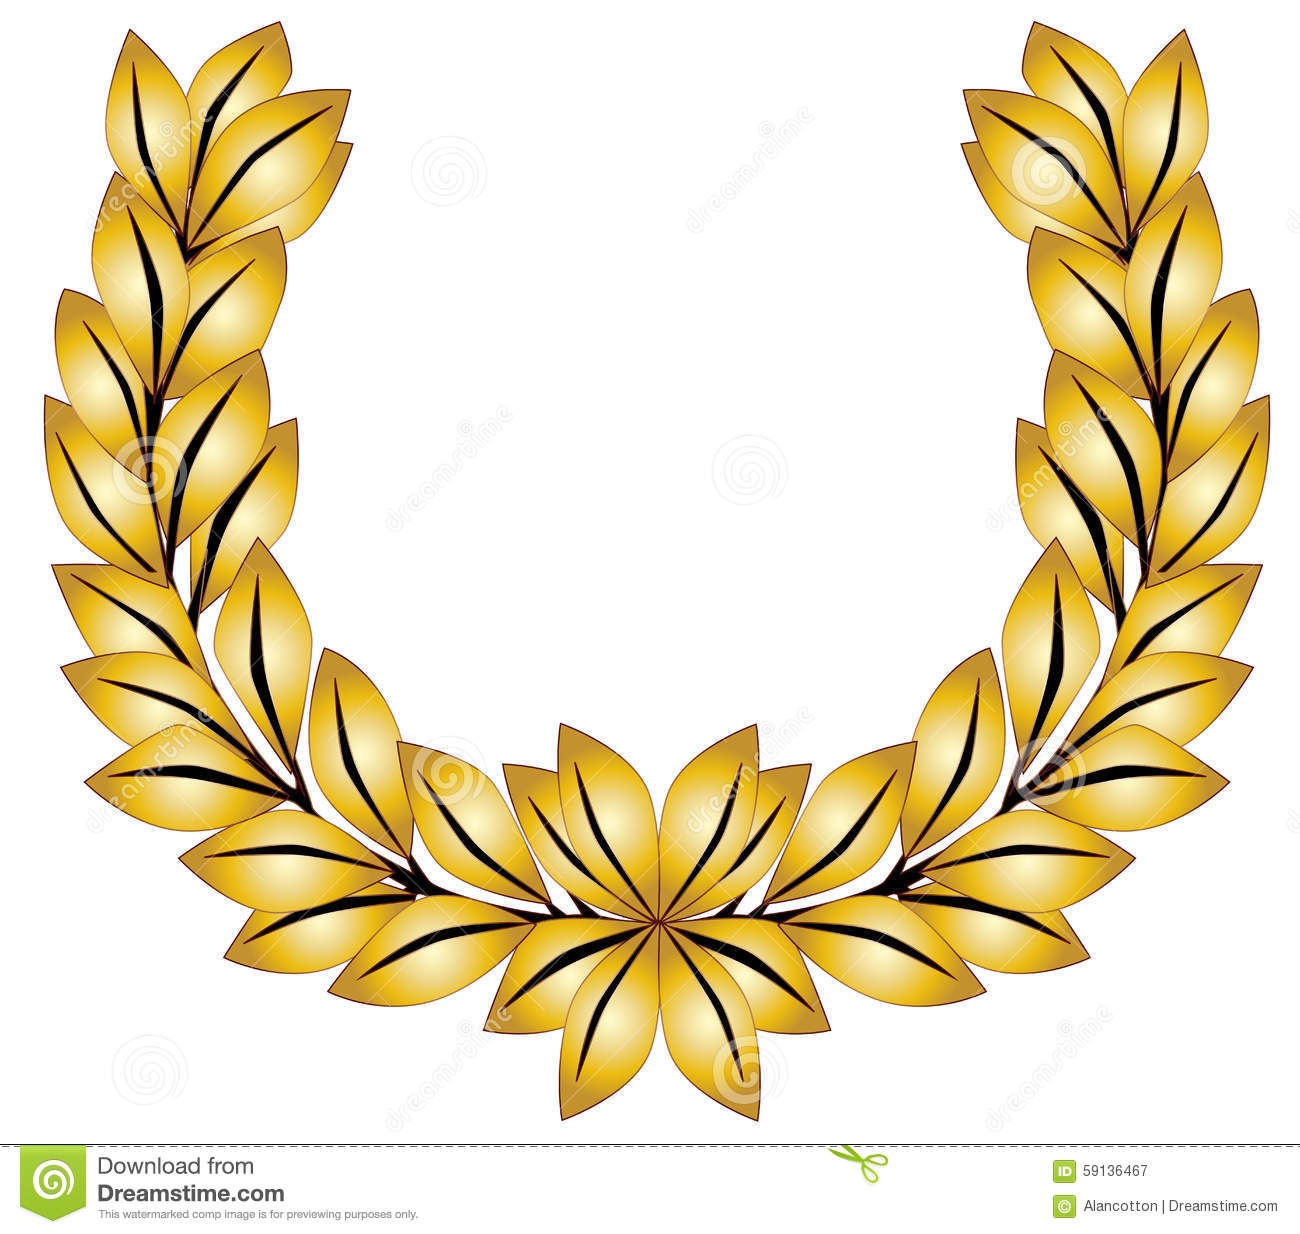 Golden Leaves Crown Royalty Free Stock Photo.